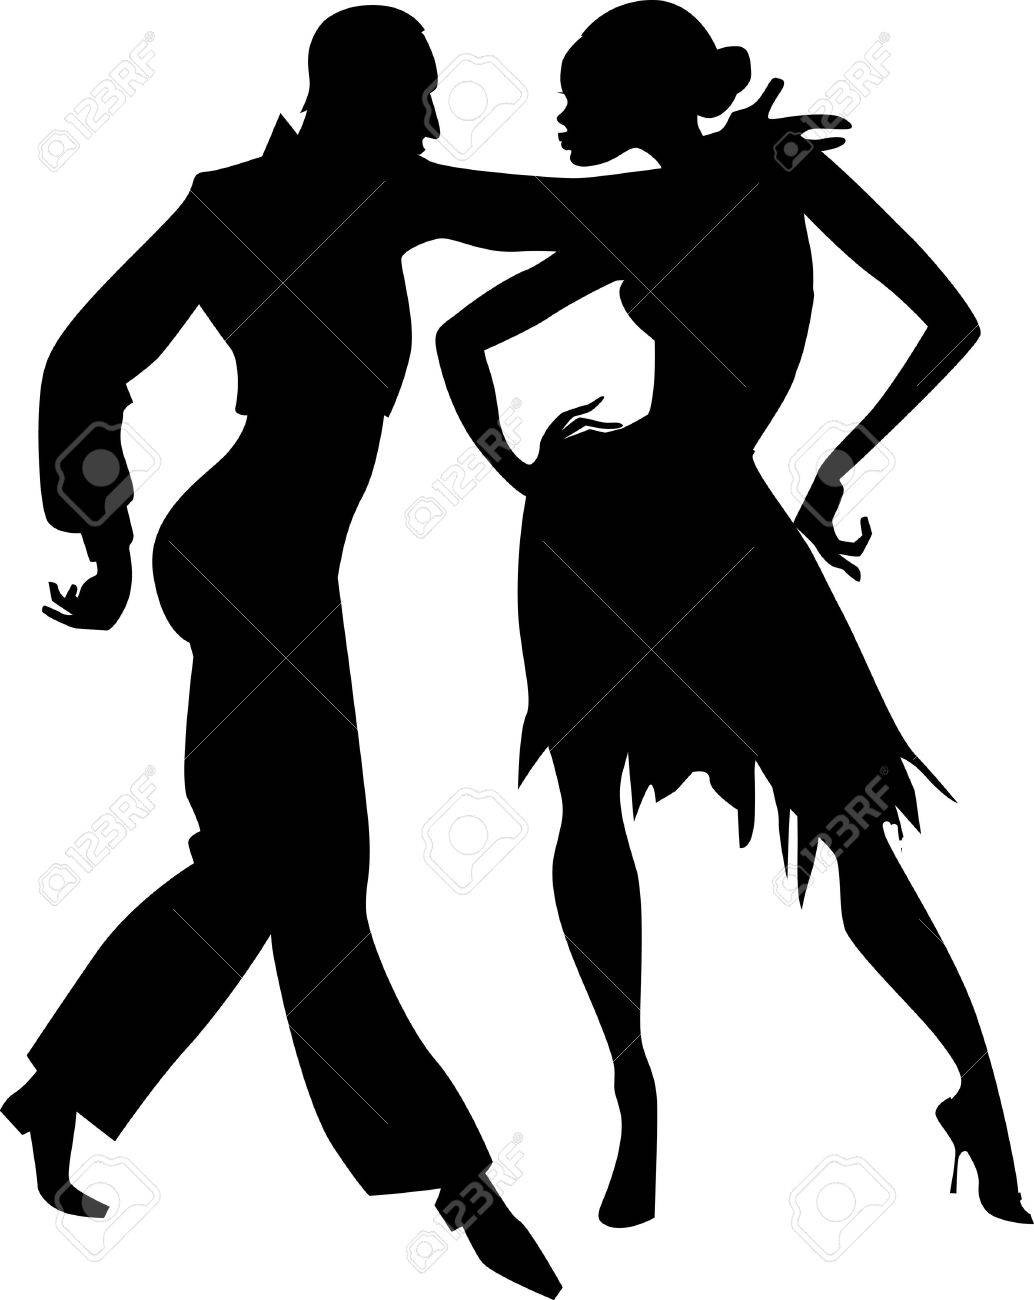 1034x1300 Ballroom Dancing Silhouette Swing Fiscalreform